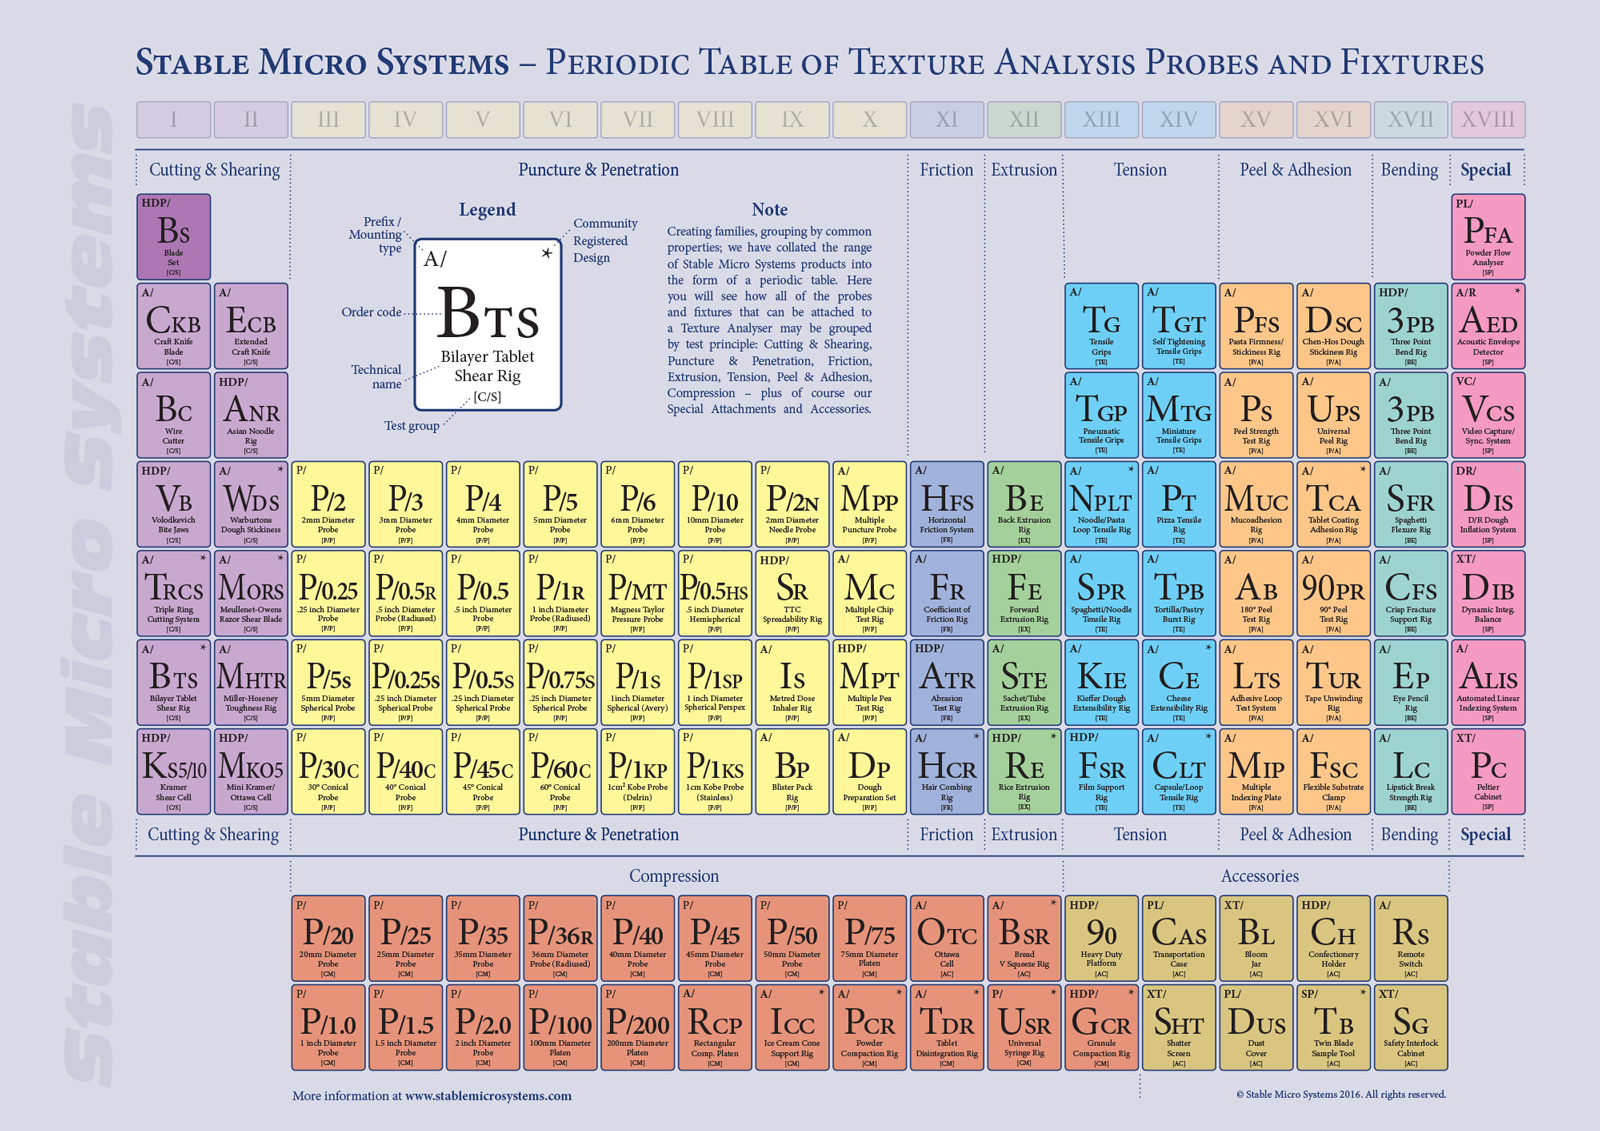 Texture analysis professionals blog the periodic table of probes periodic table of probes and fixtures urtaz Image collections